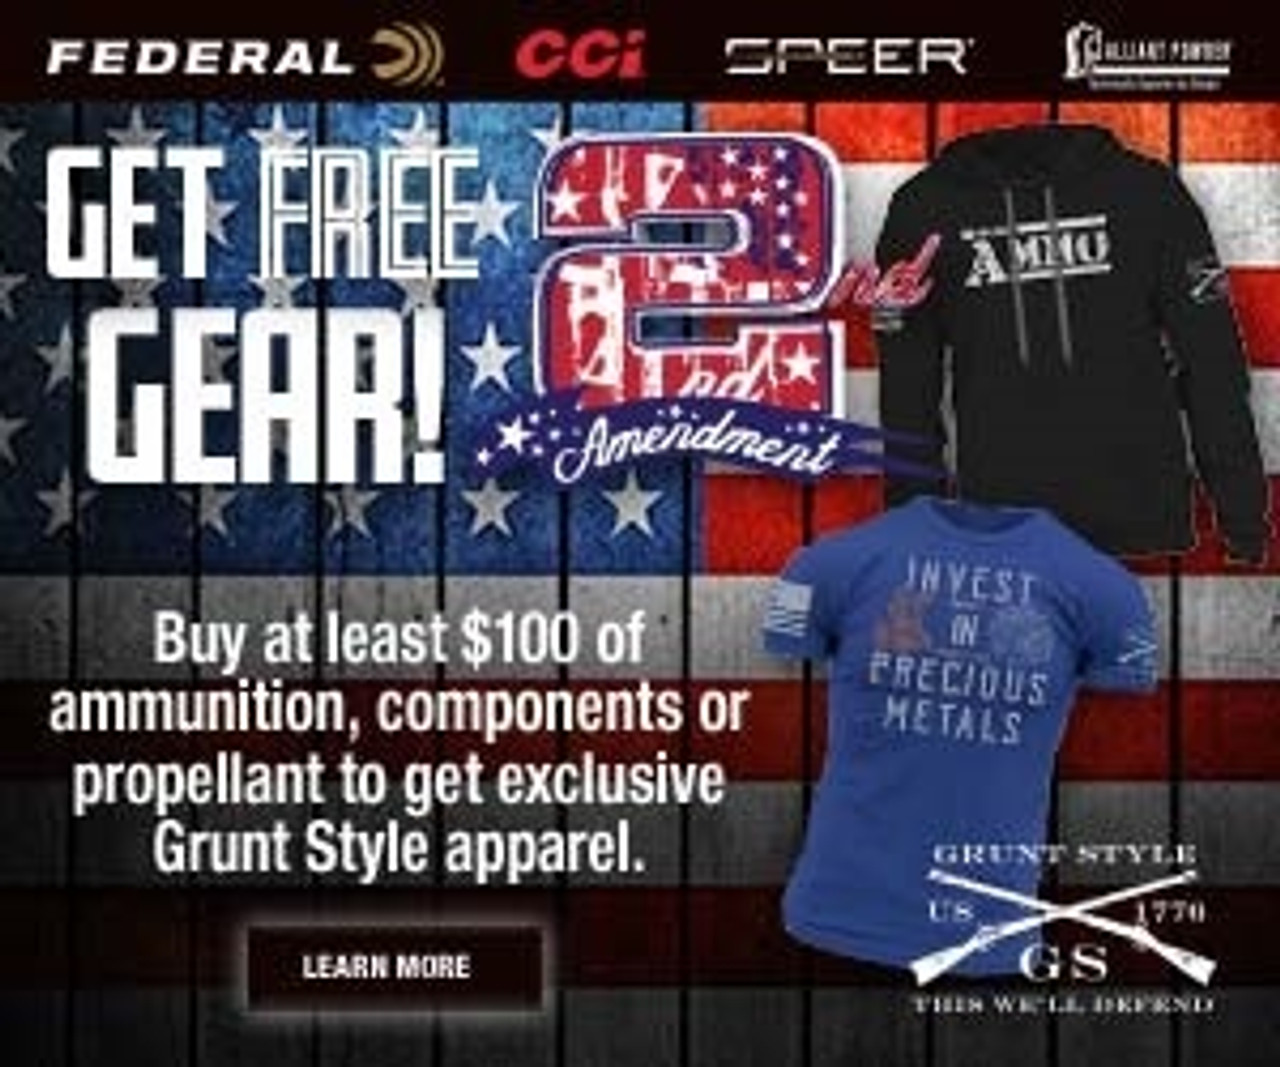 2nd Amendment Promotion